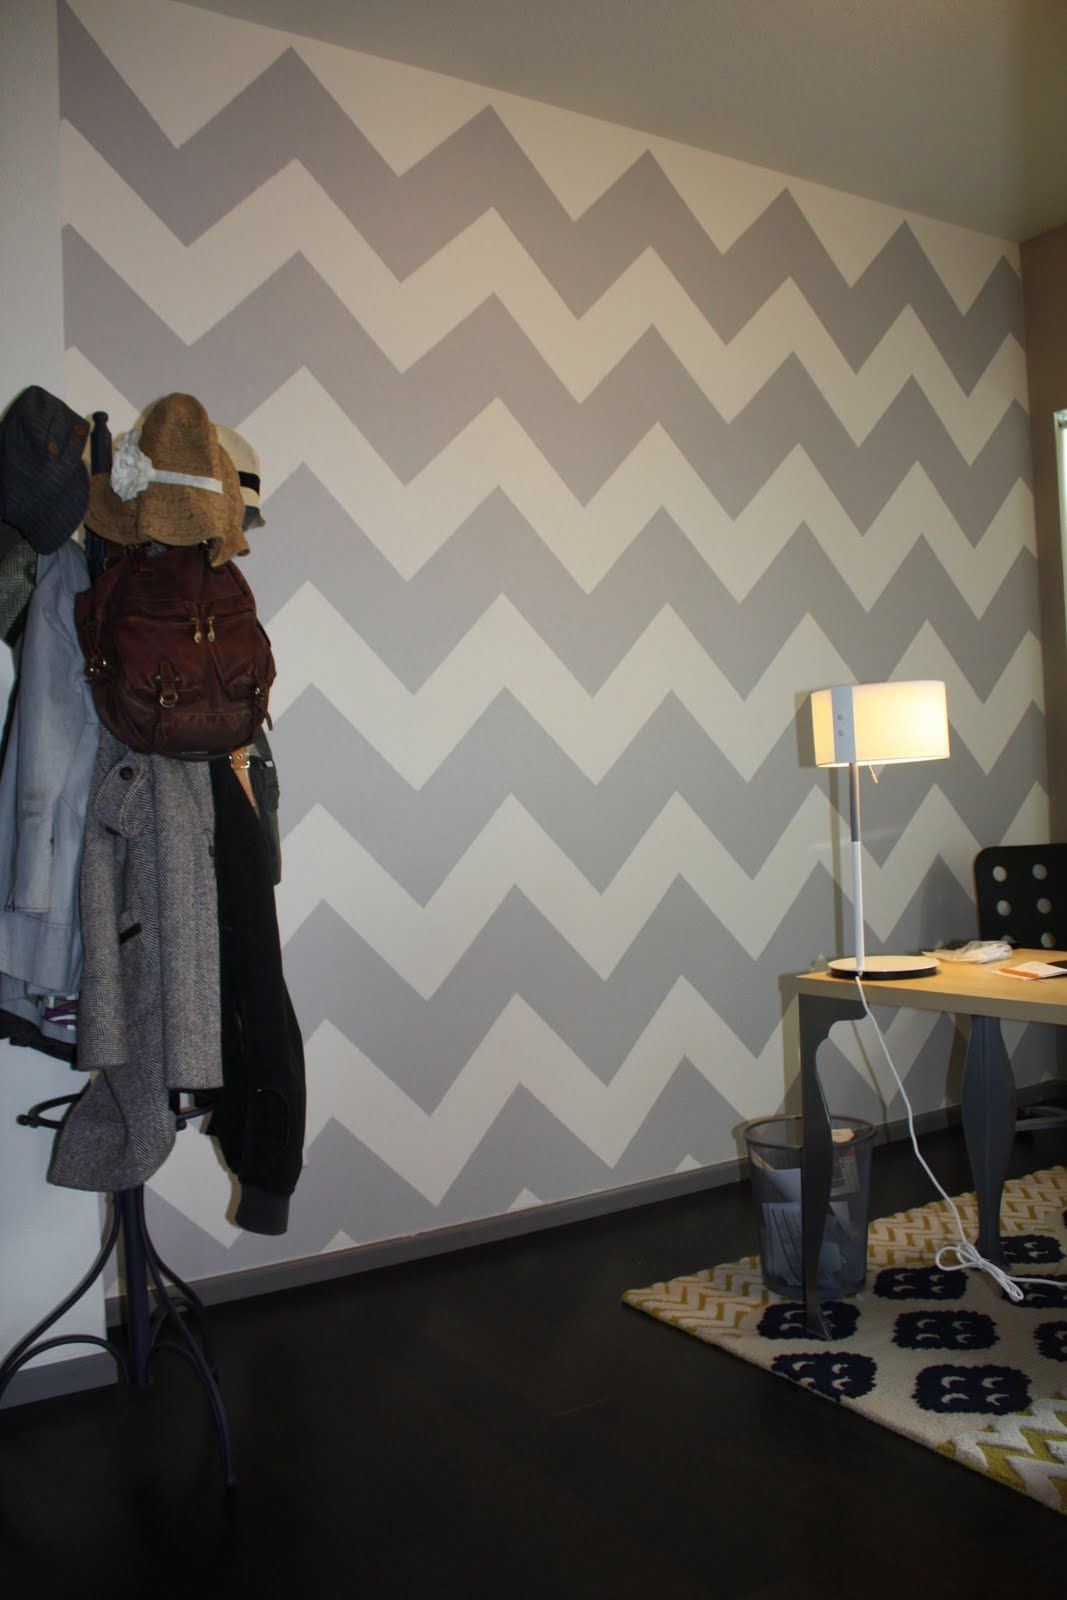 Zig Zag Bedroom Ideas pinwendy goldberg on mg style in 2018 | pinterest | wall, zig